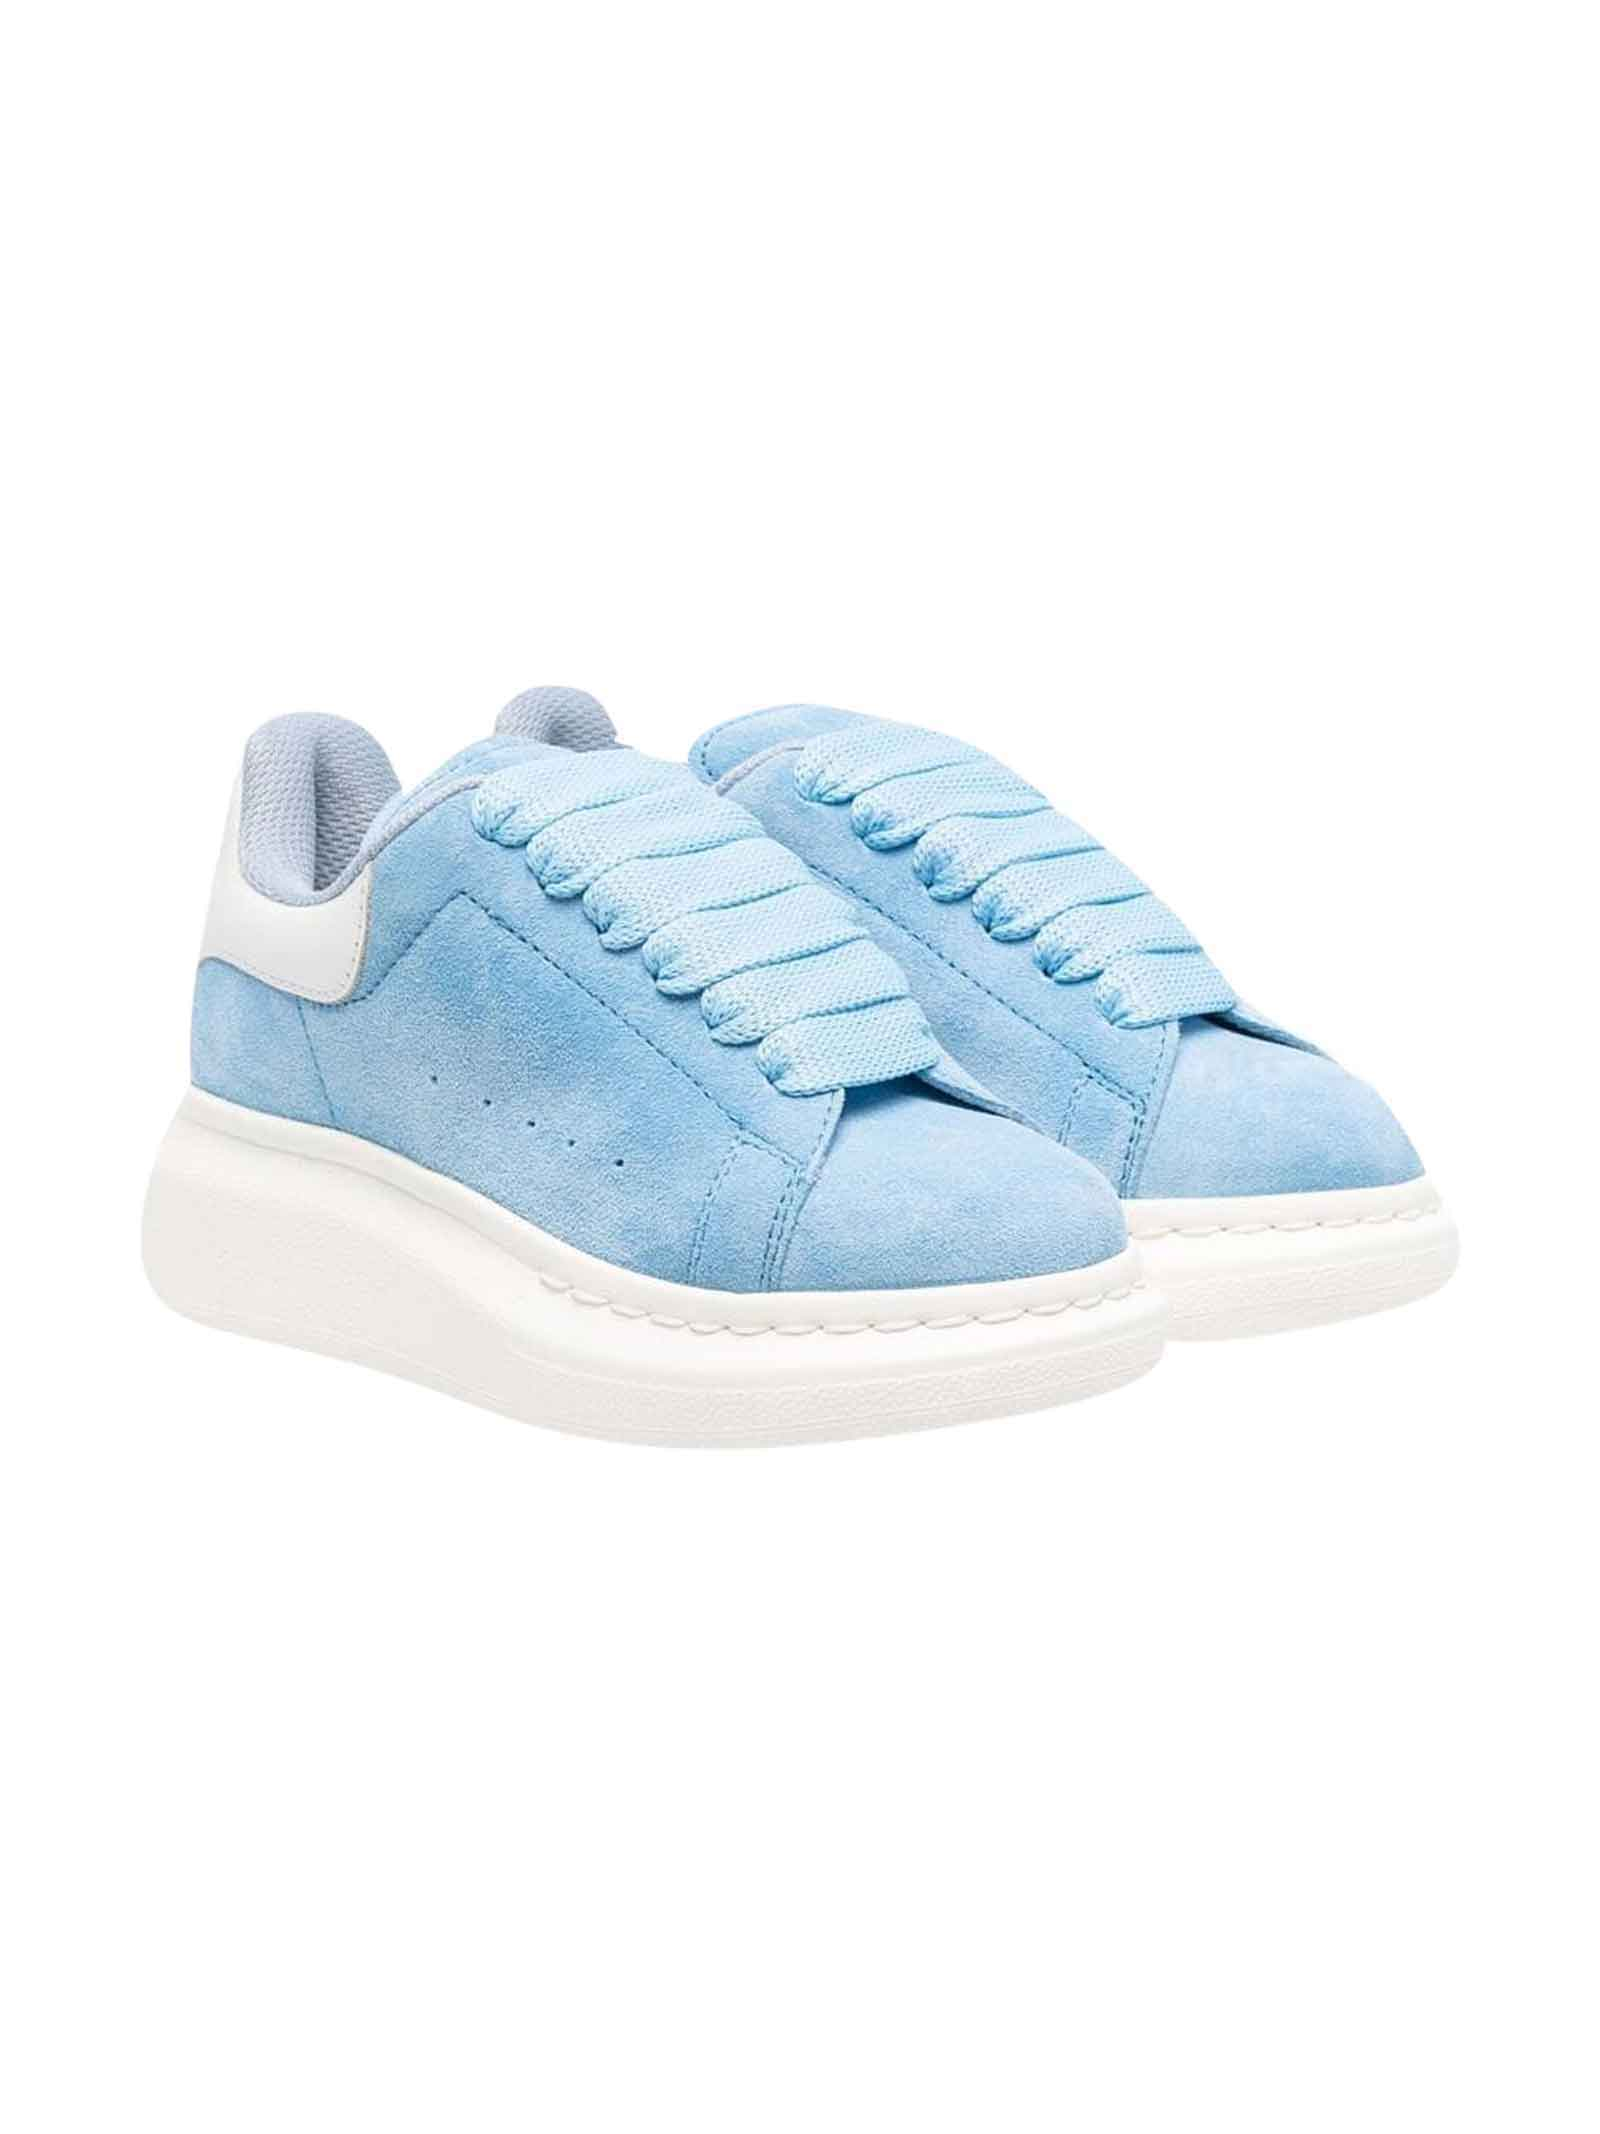 Alexander McQueen Light Blue Sneakers With Round Tip, Higher Sole And Frontal Lace Closure Kids